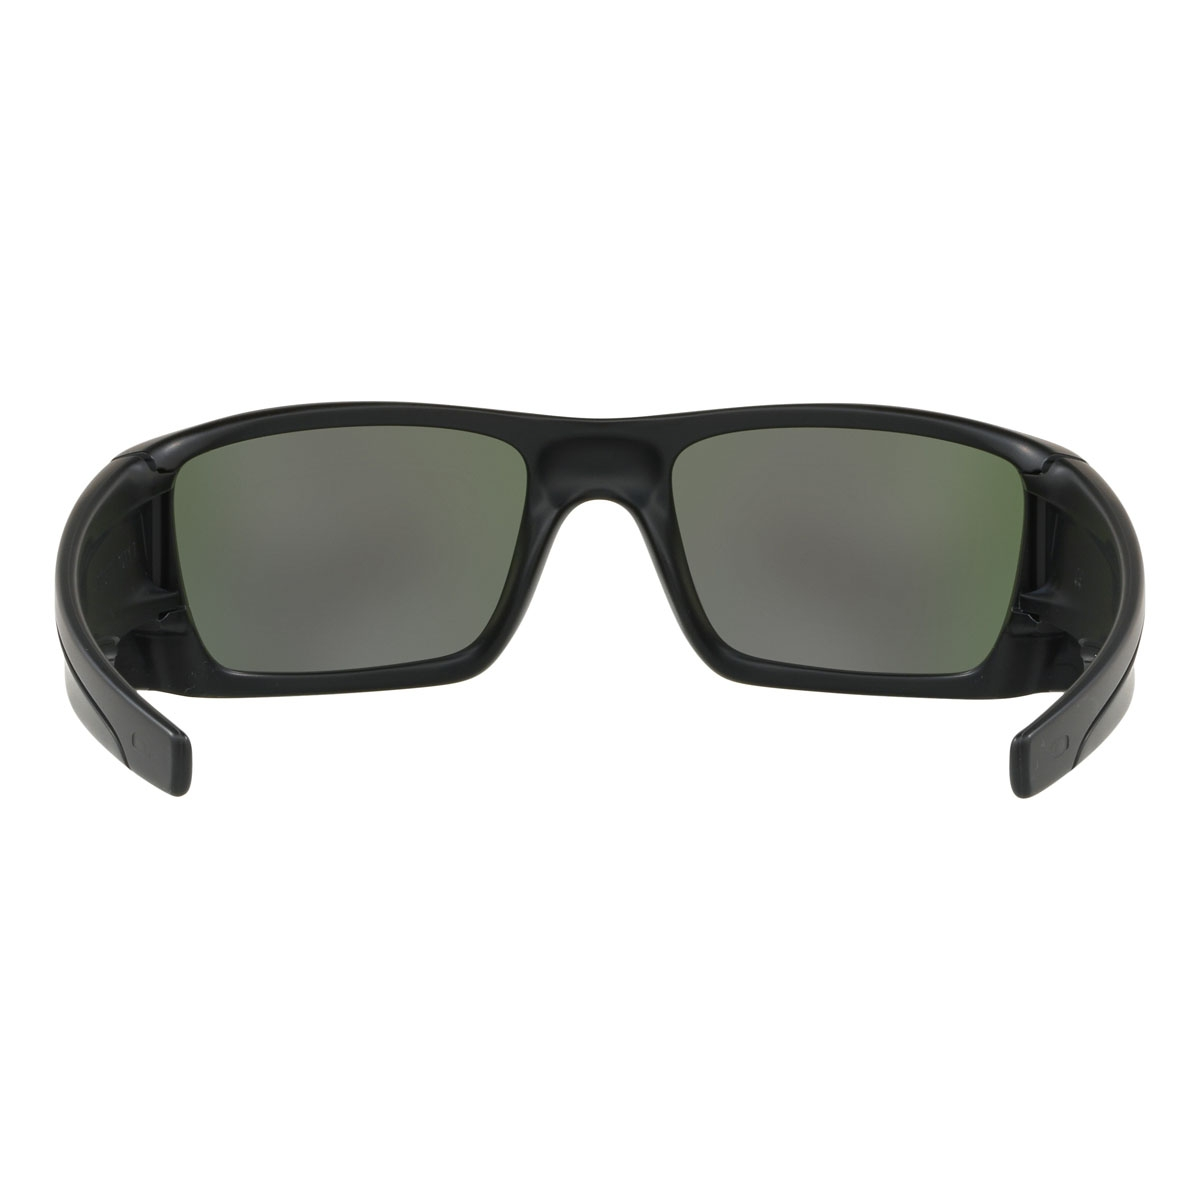 26dbd2057de ... Image of Oakley Fuel Cell Lifestyle Men s Prizm Sunglasses - Matte  Black Frame PRIZM Jade ...